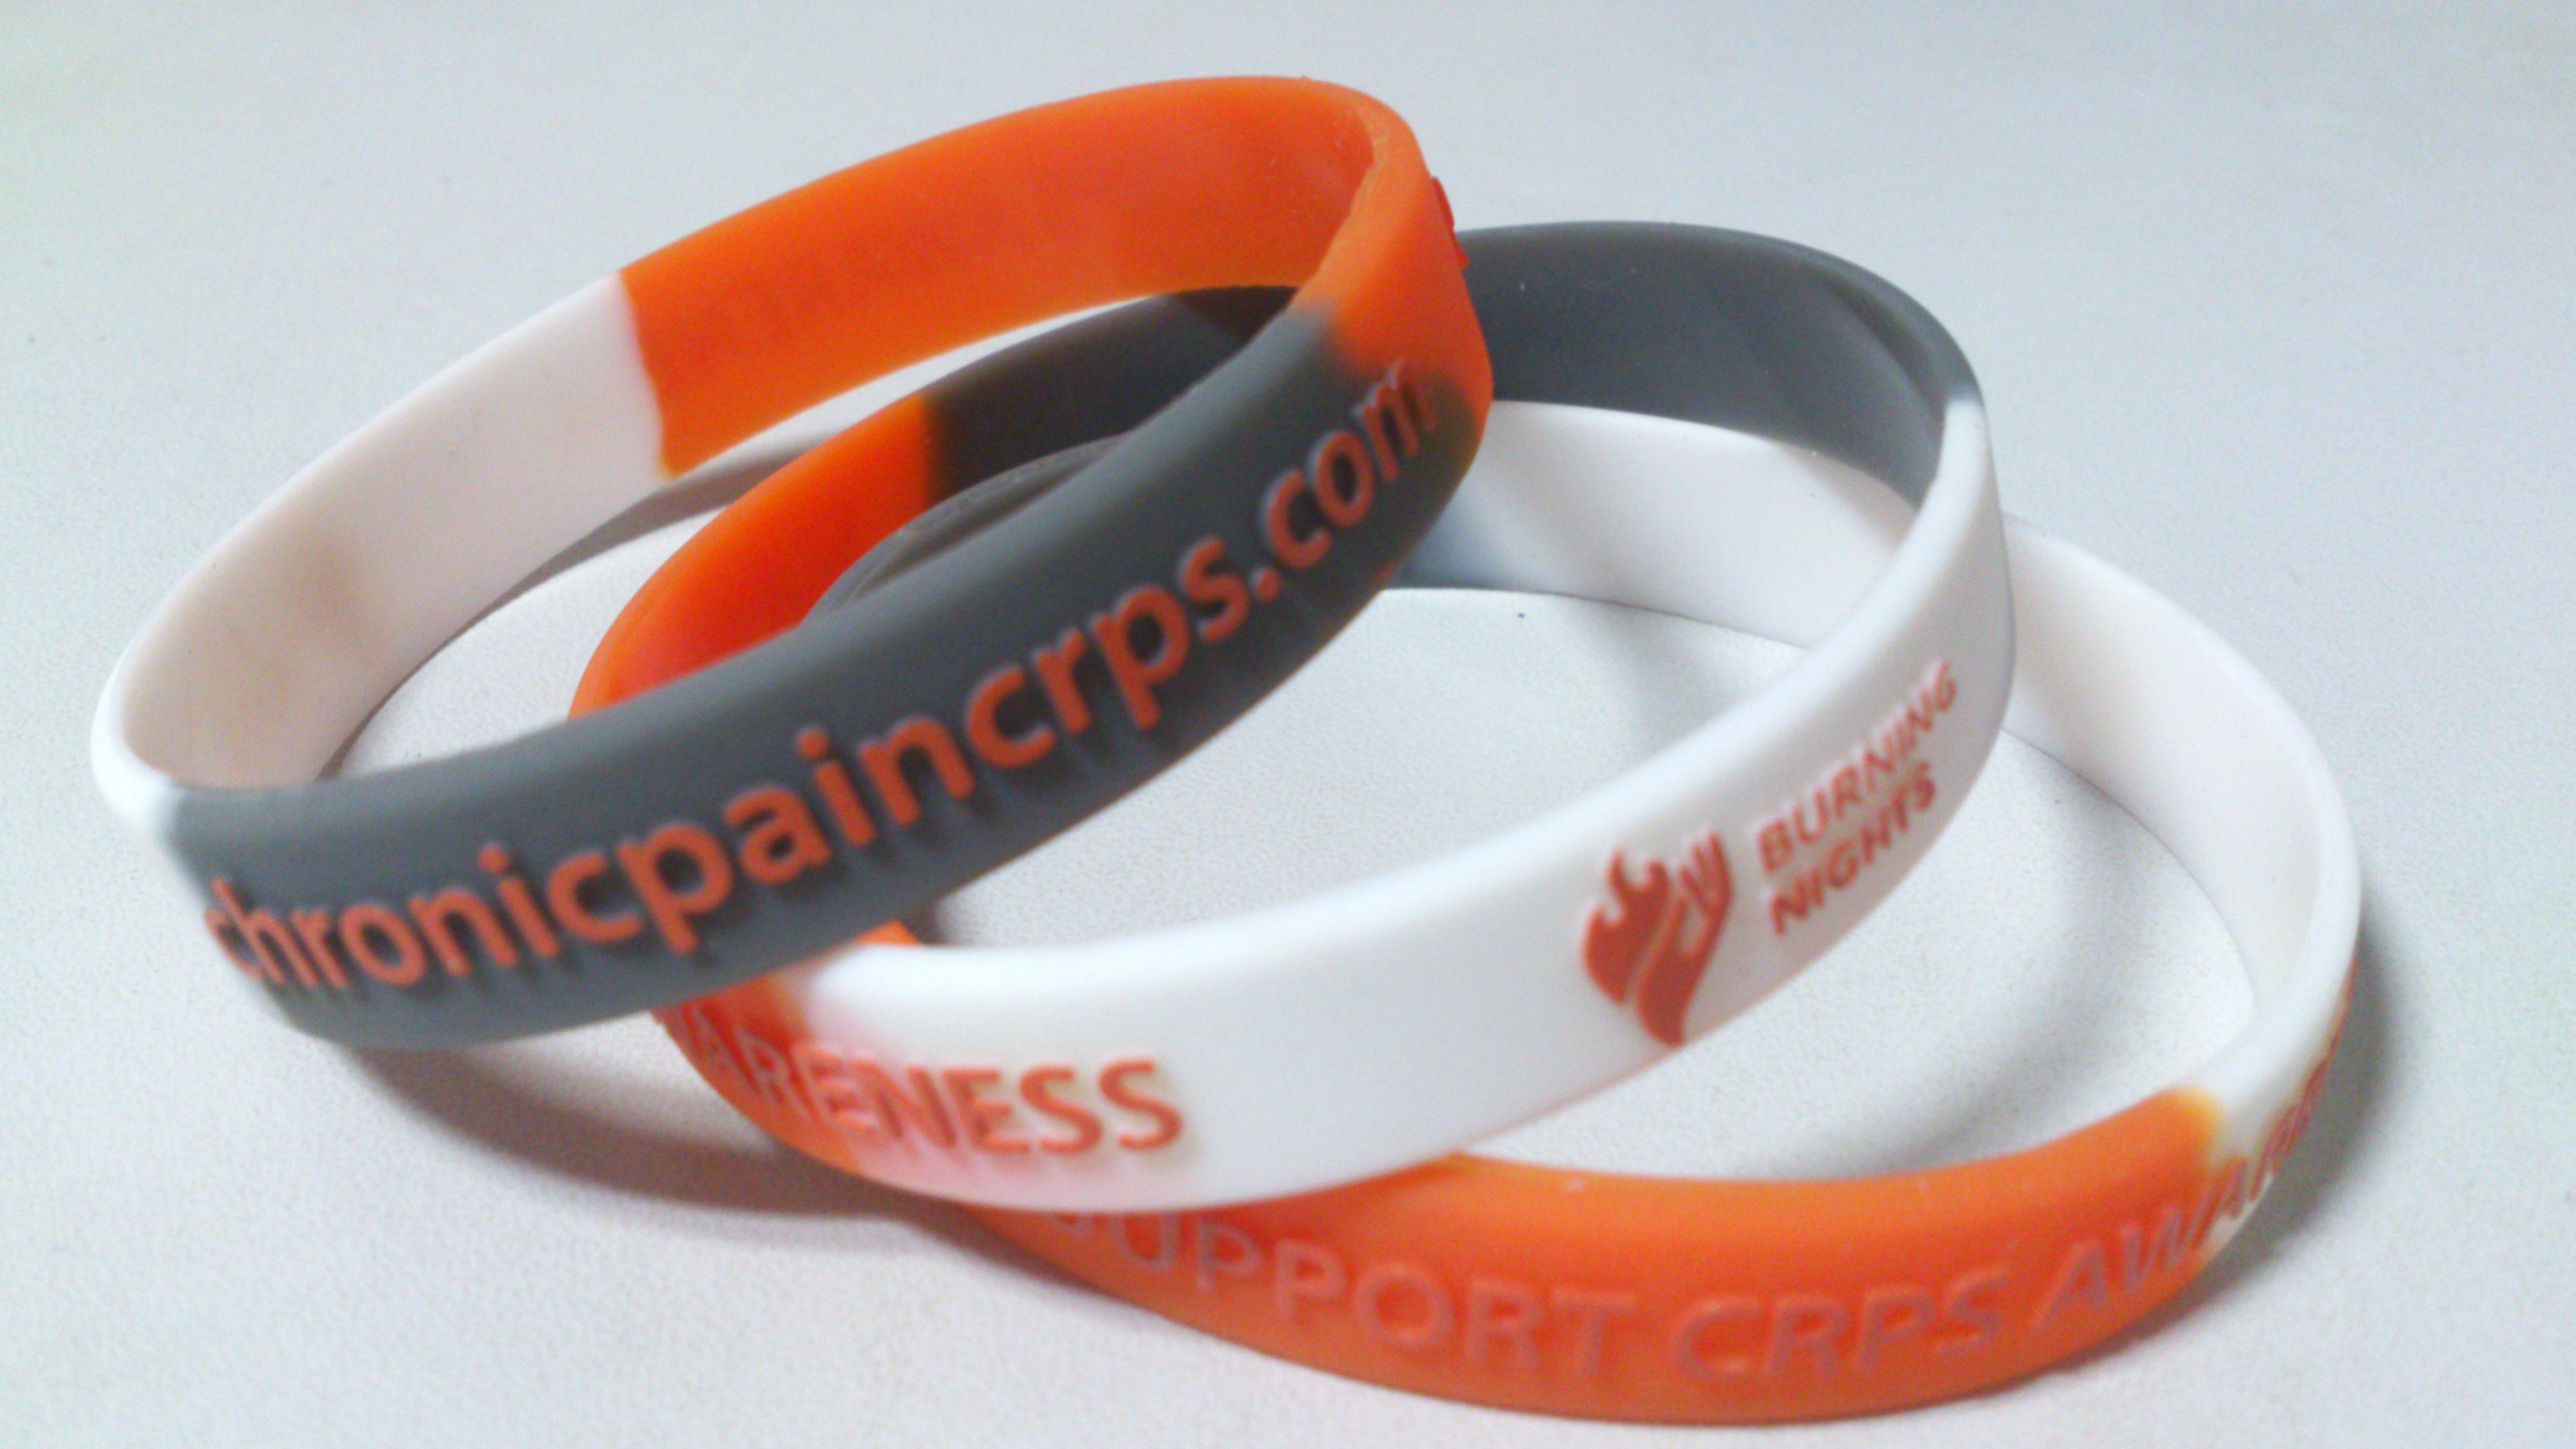 CRPS RSD support awareness wristbands